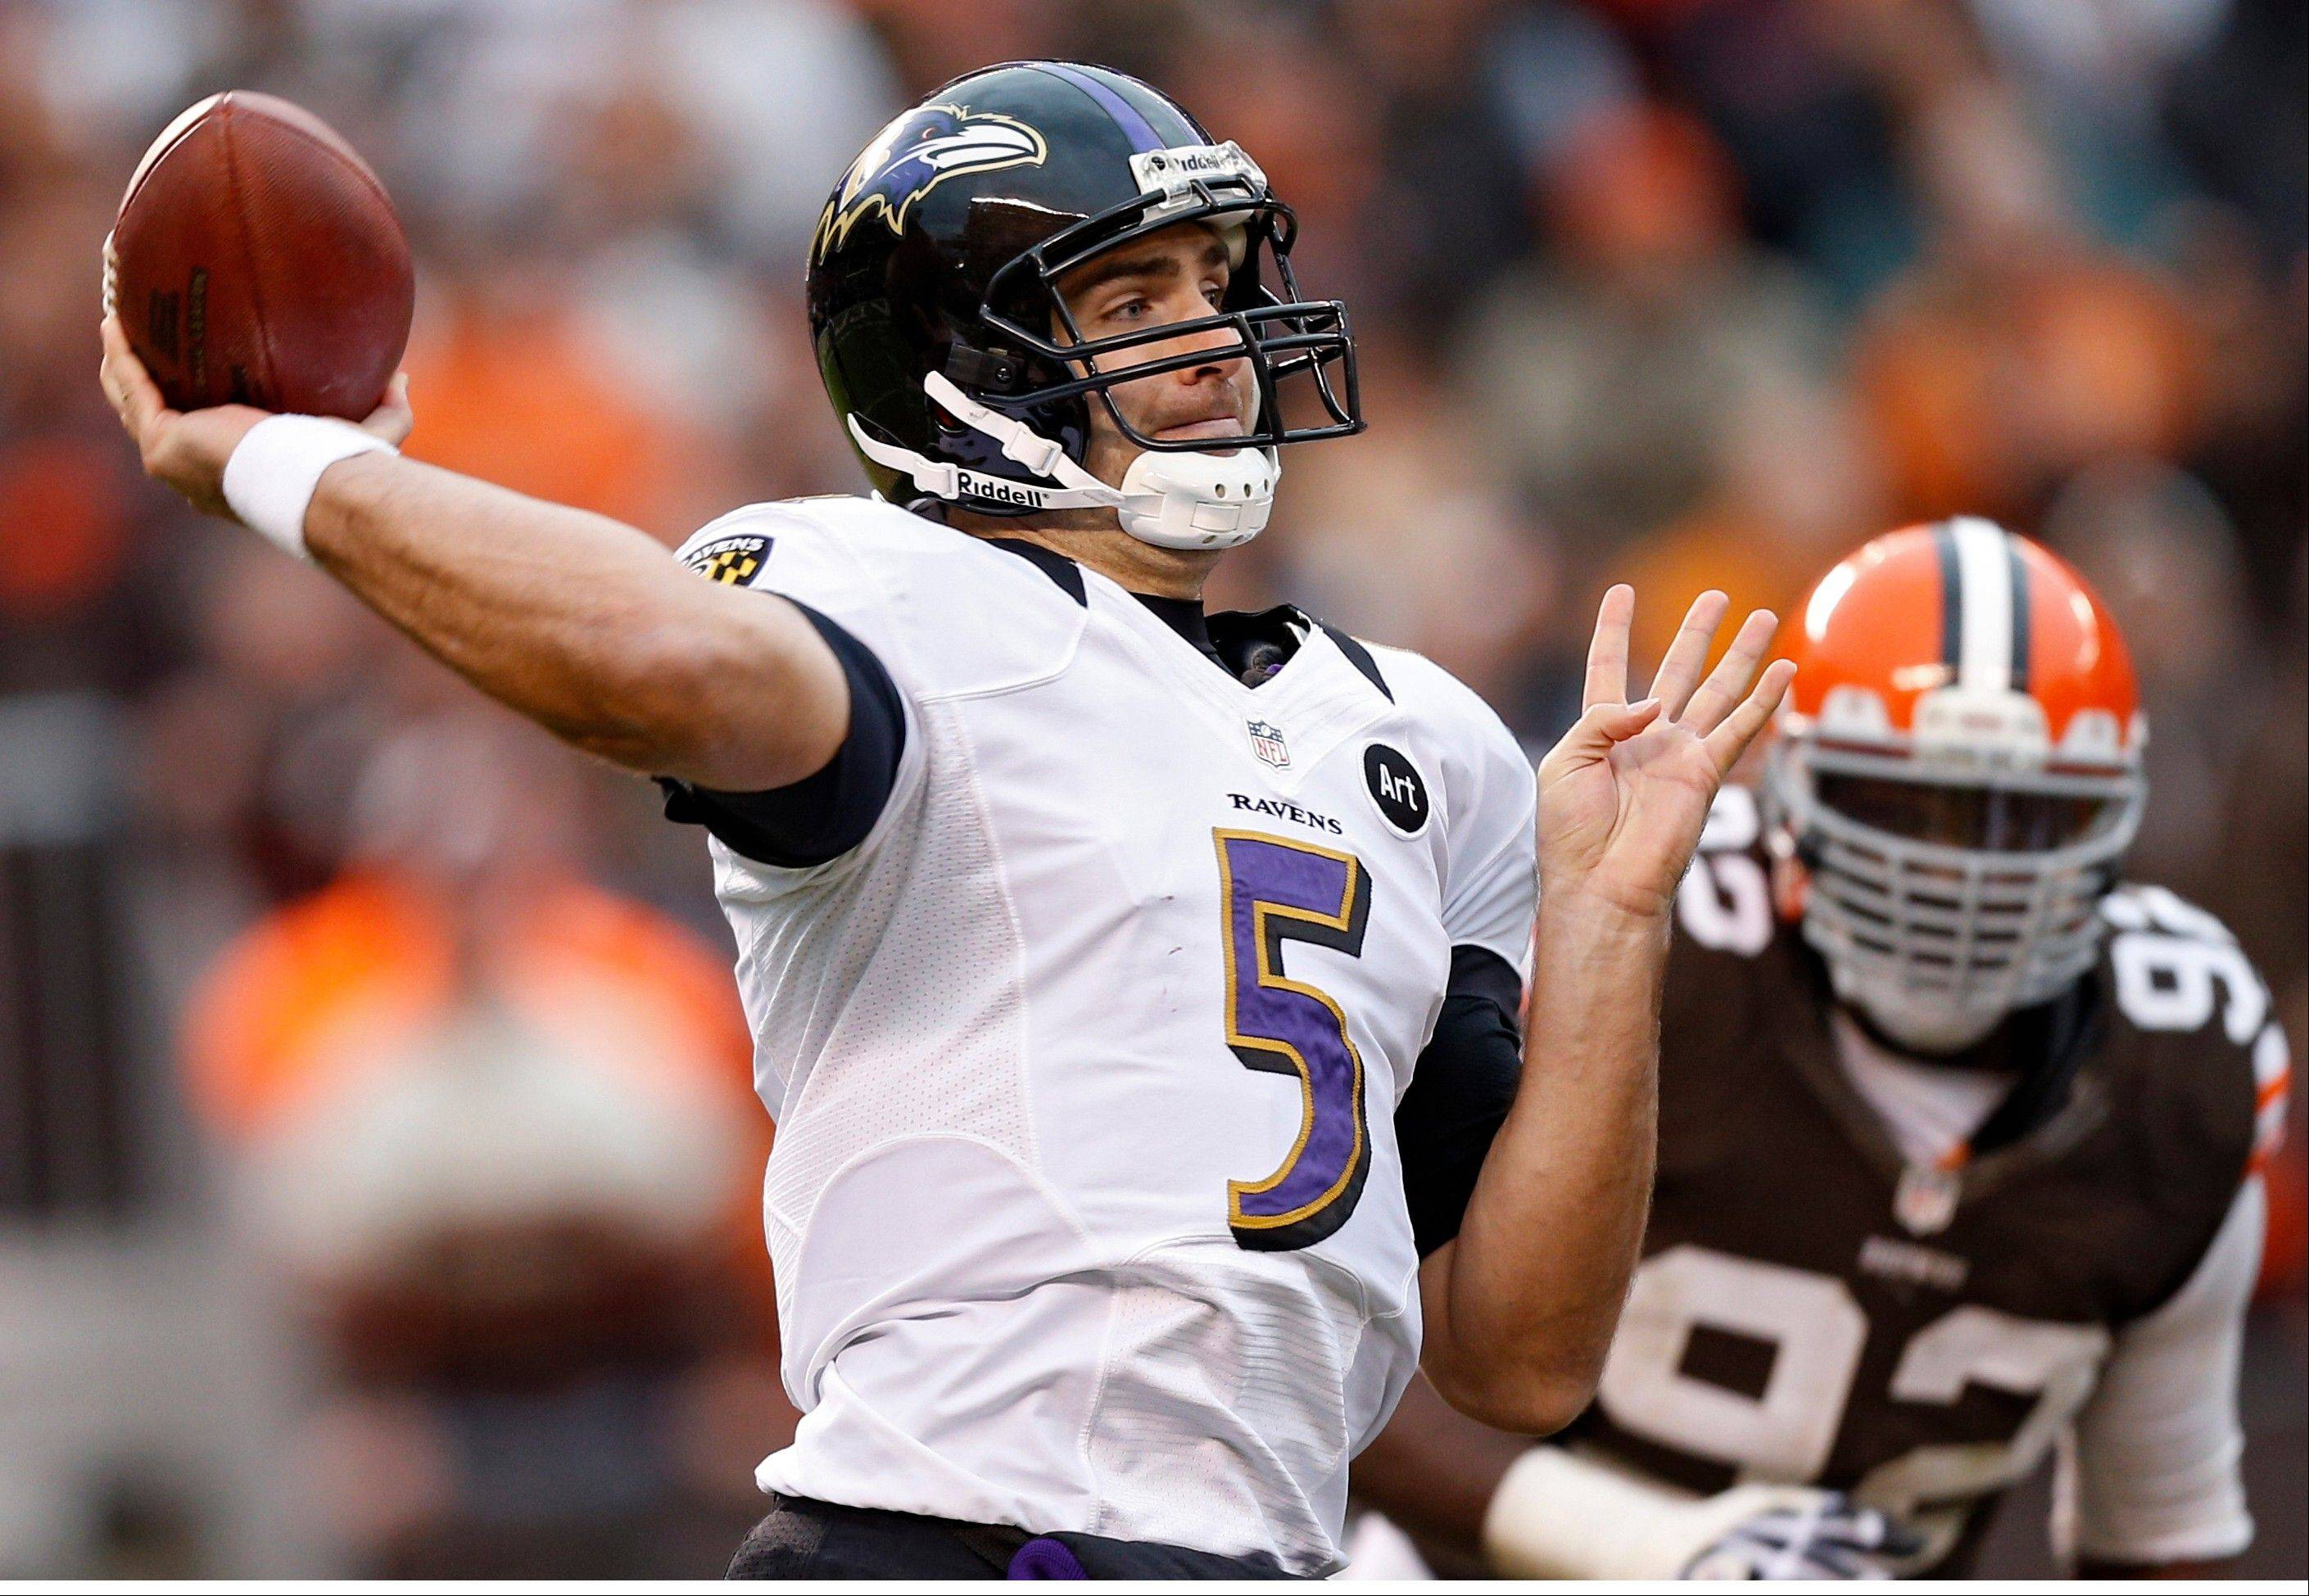 Baltimore Ravens quarterback Joe Flacco passes against the Cleveland Browns in the fourth quarter Sunday in Cleveland.